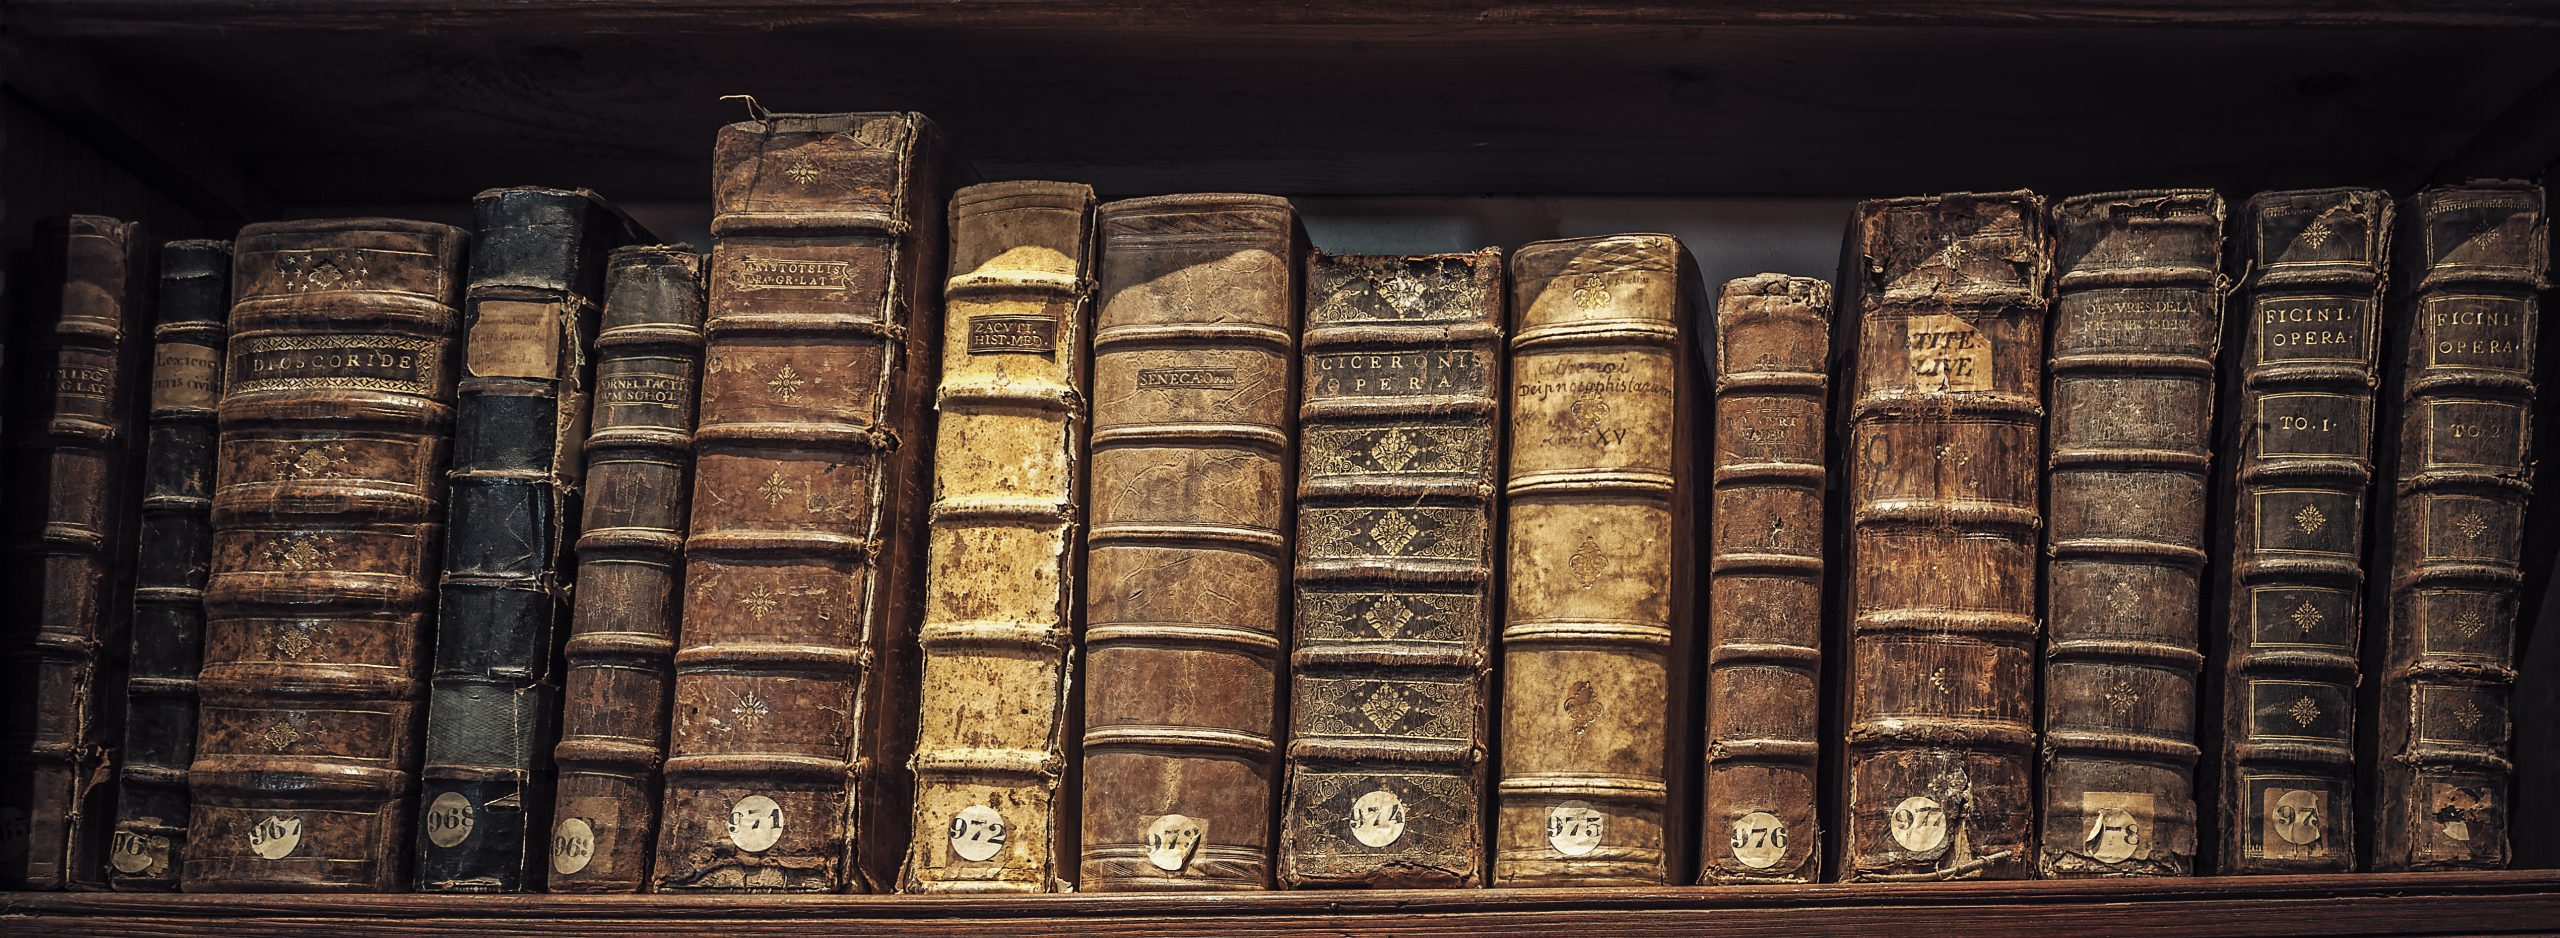 old book in a library